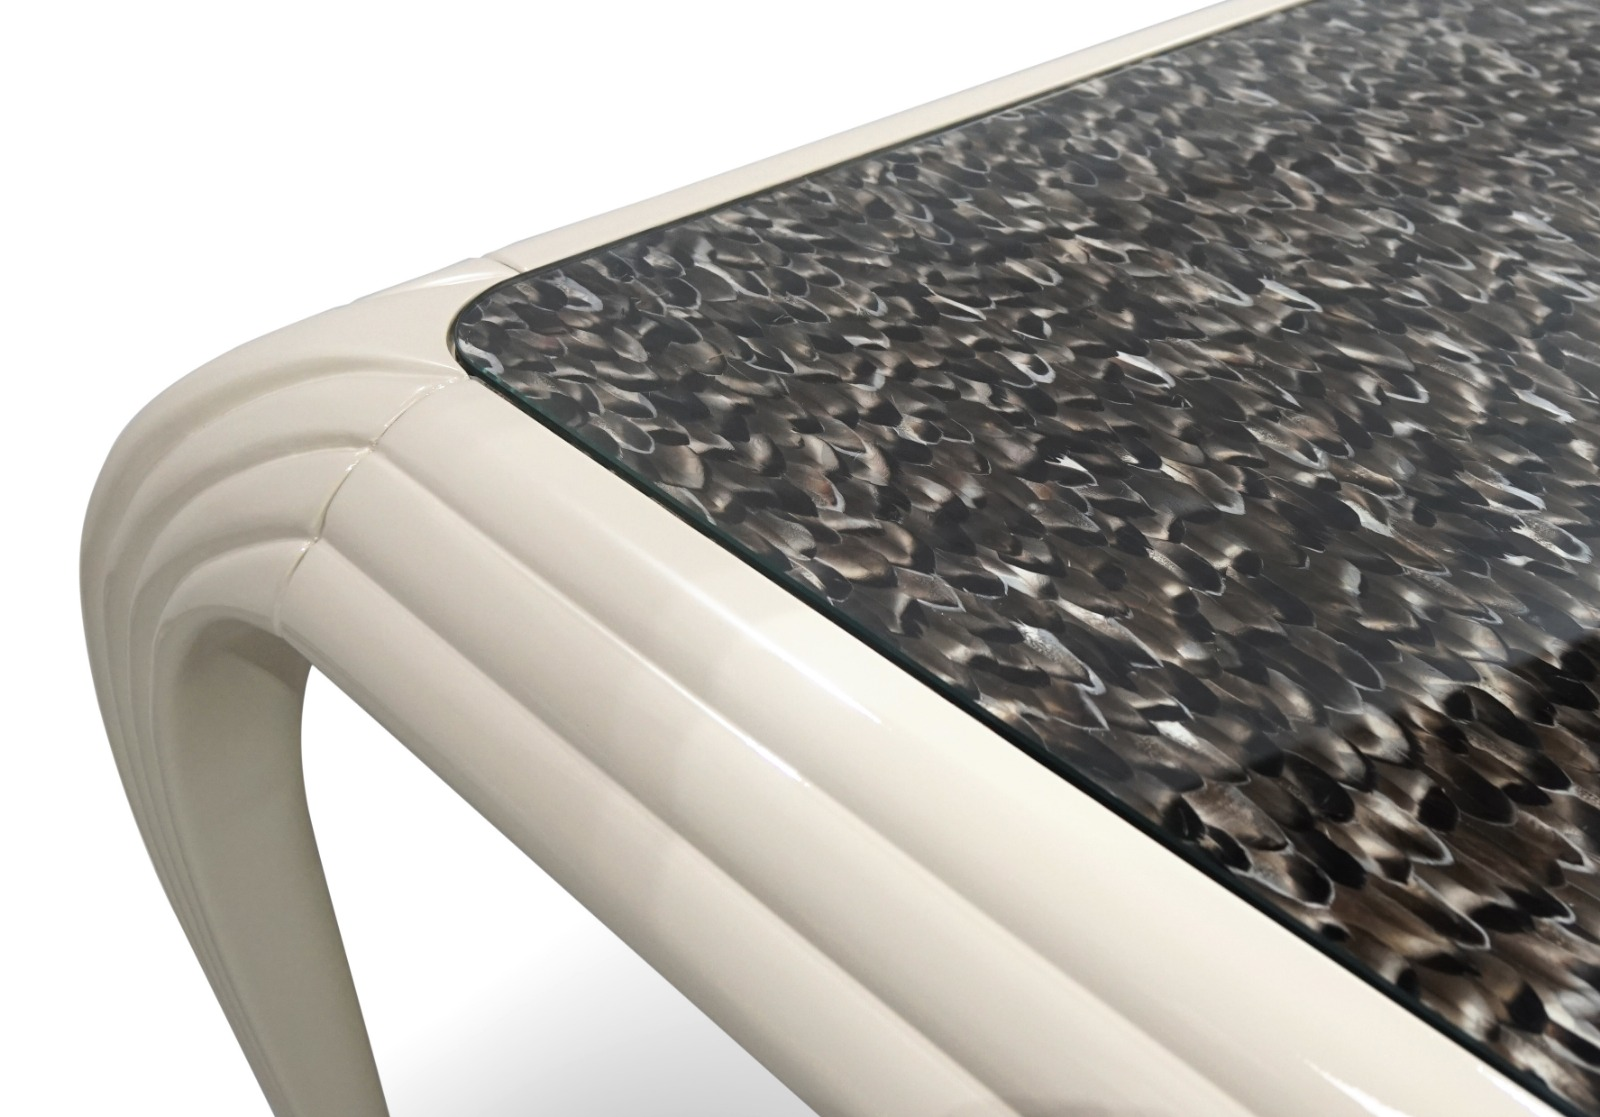 Natural Feather Top Detail on KOKET's New Merveille Dining Table debuting at salone del mobile milano